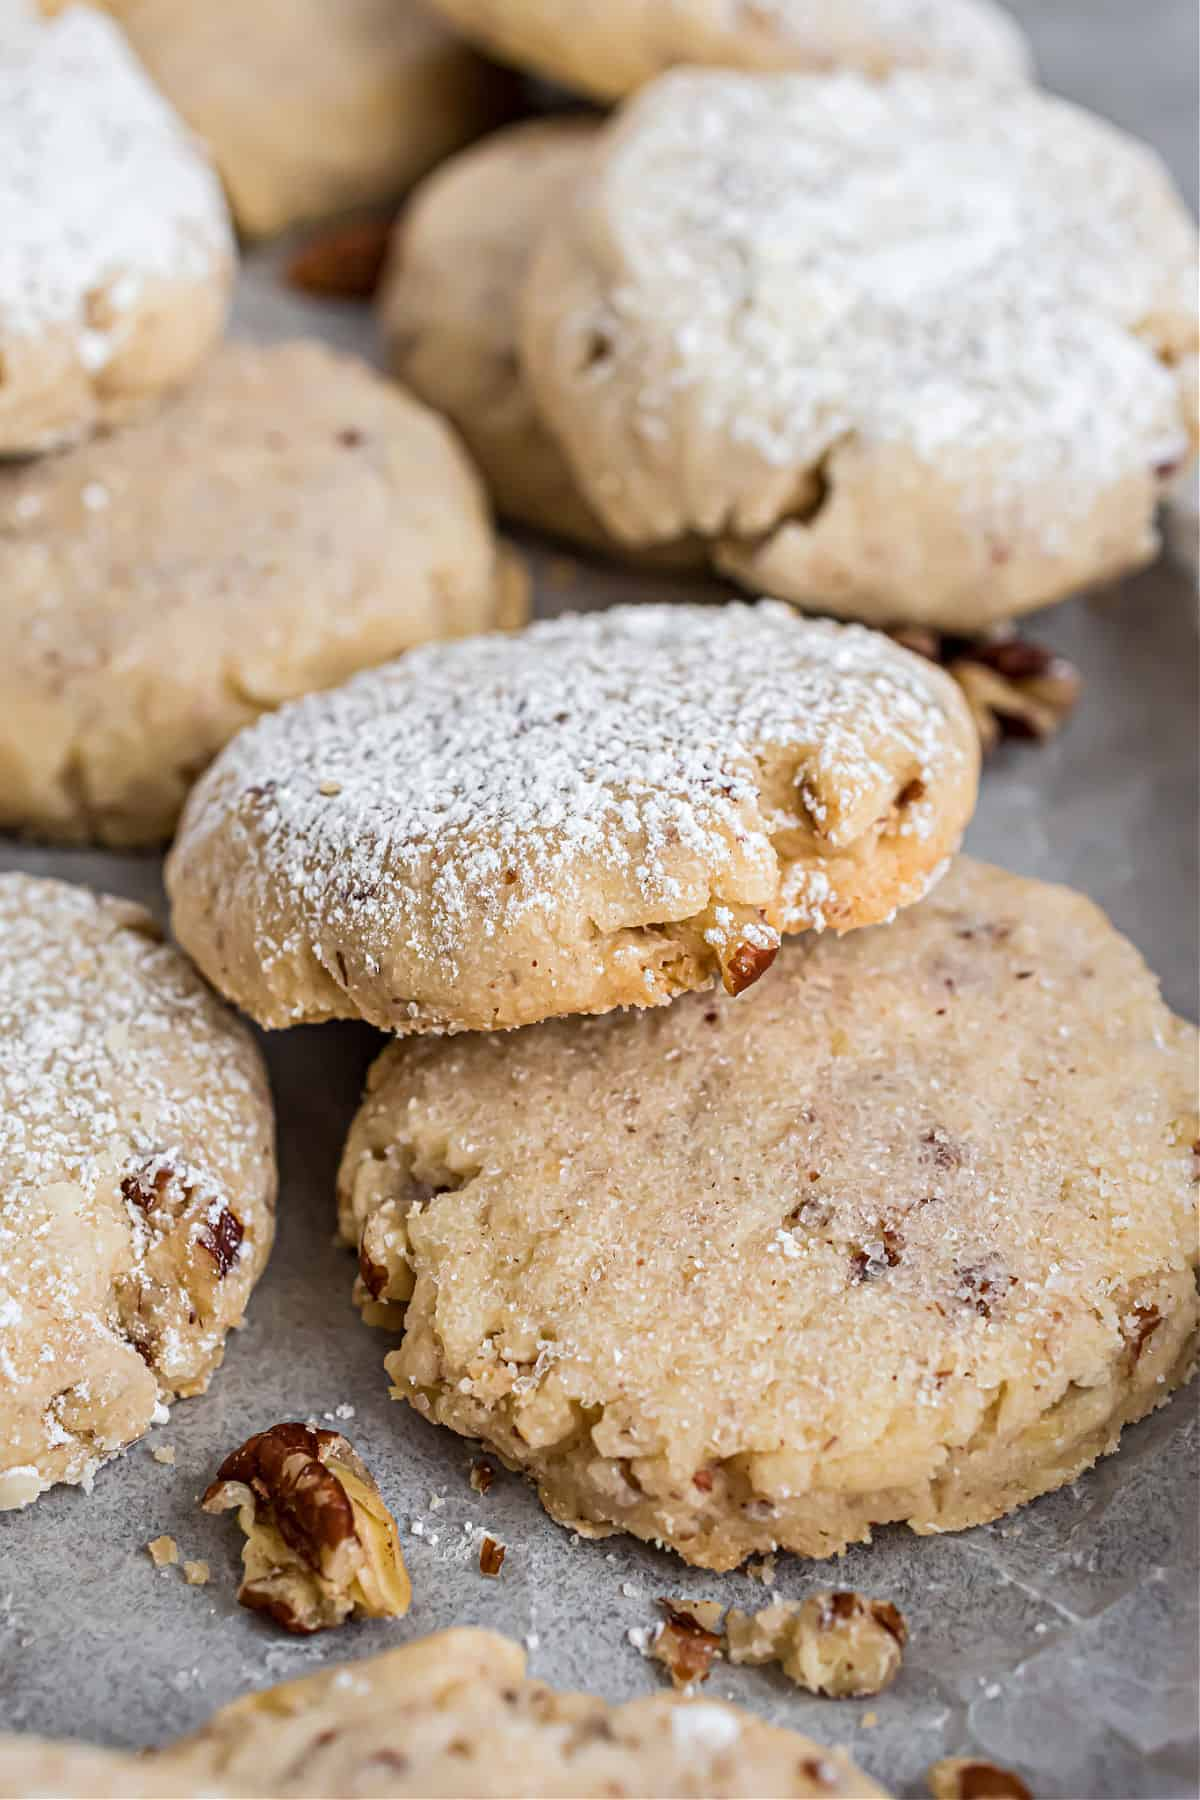 Pecan sandies on cookie sheet, some dusted with powdered sugar.